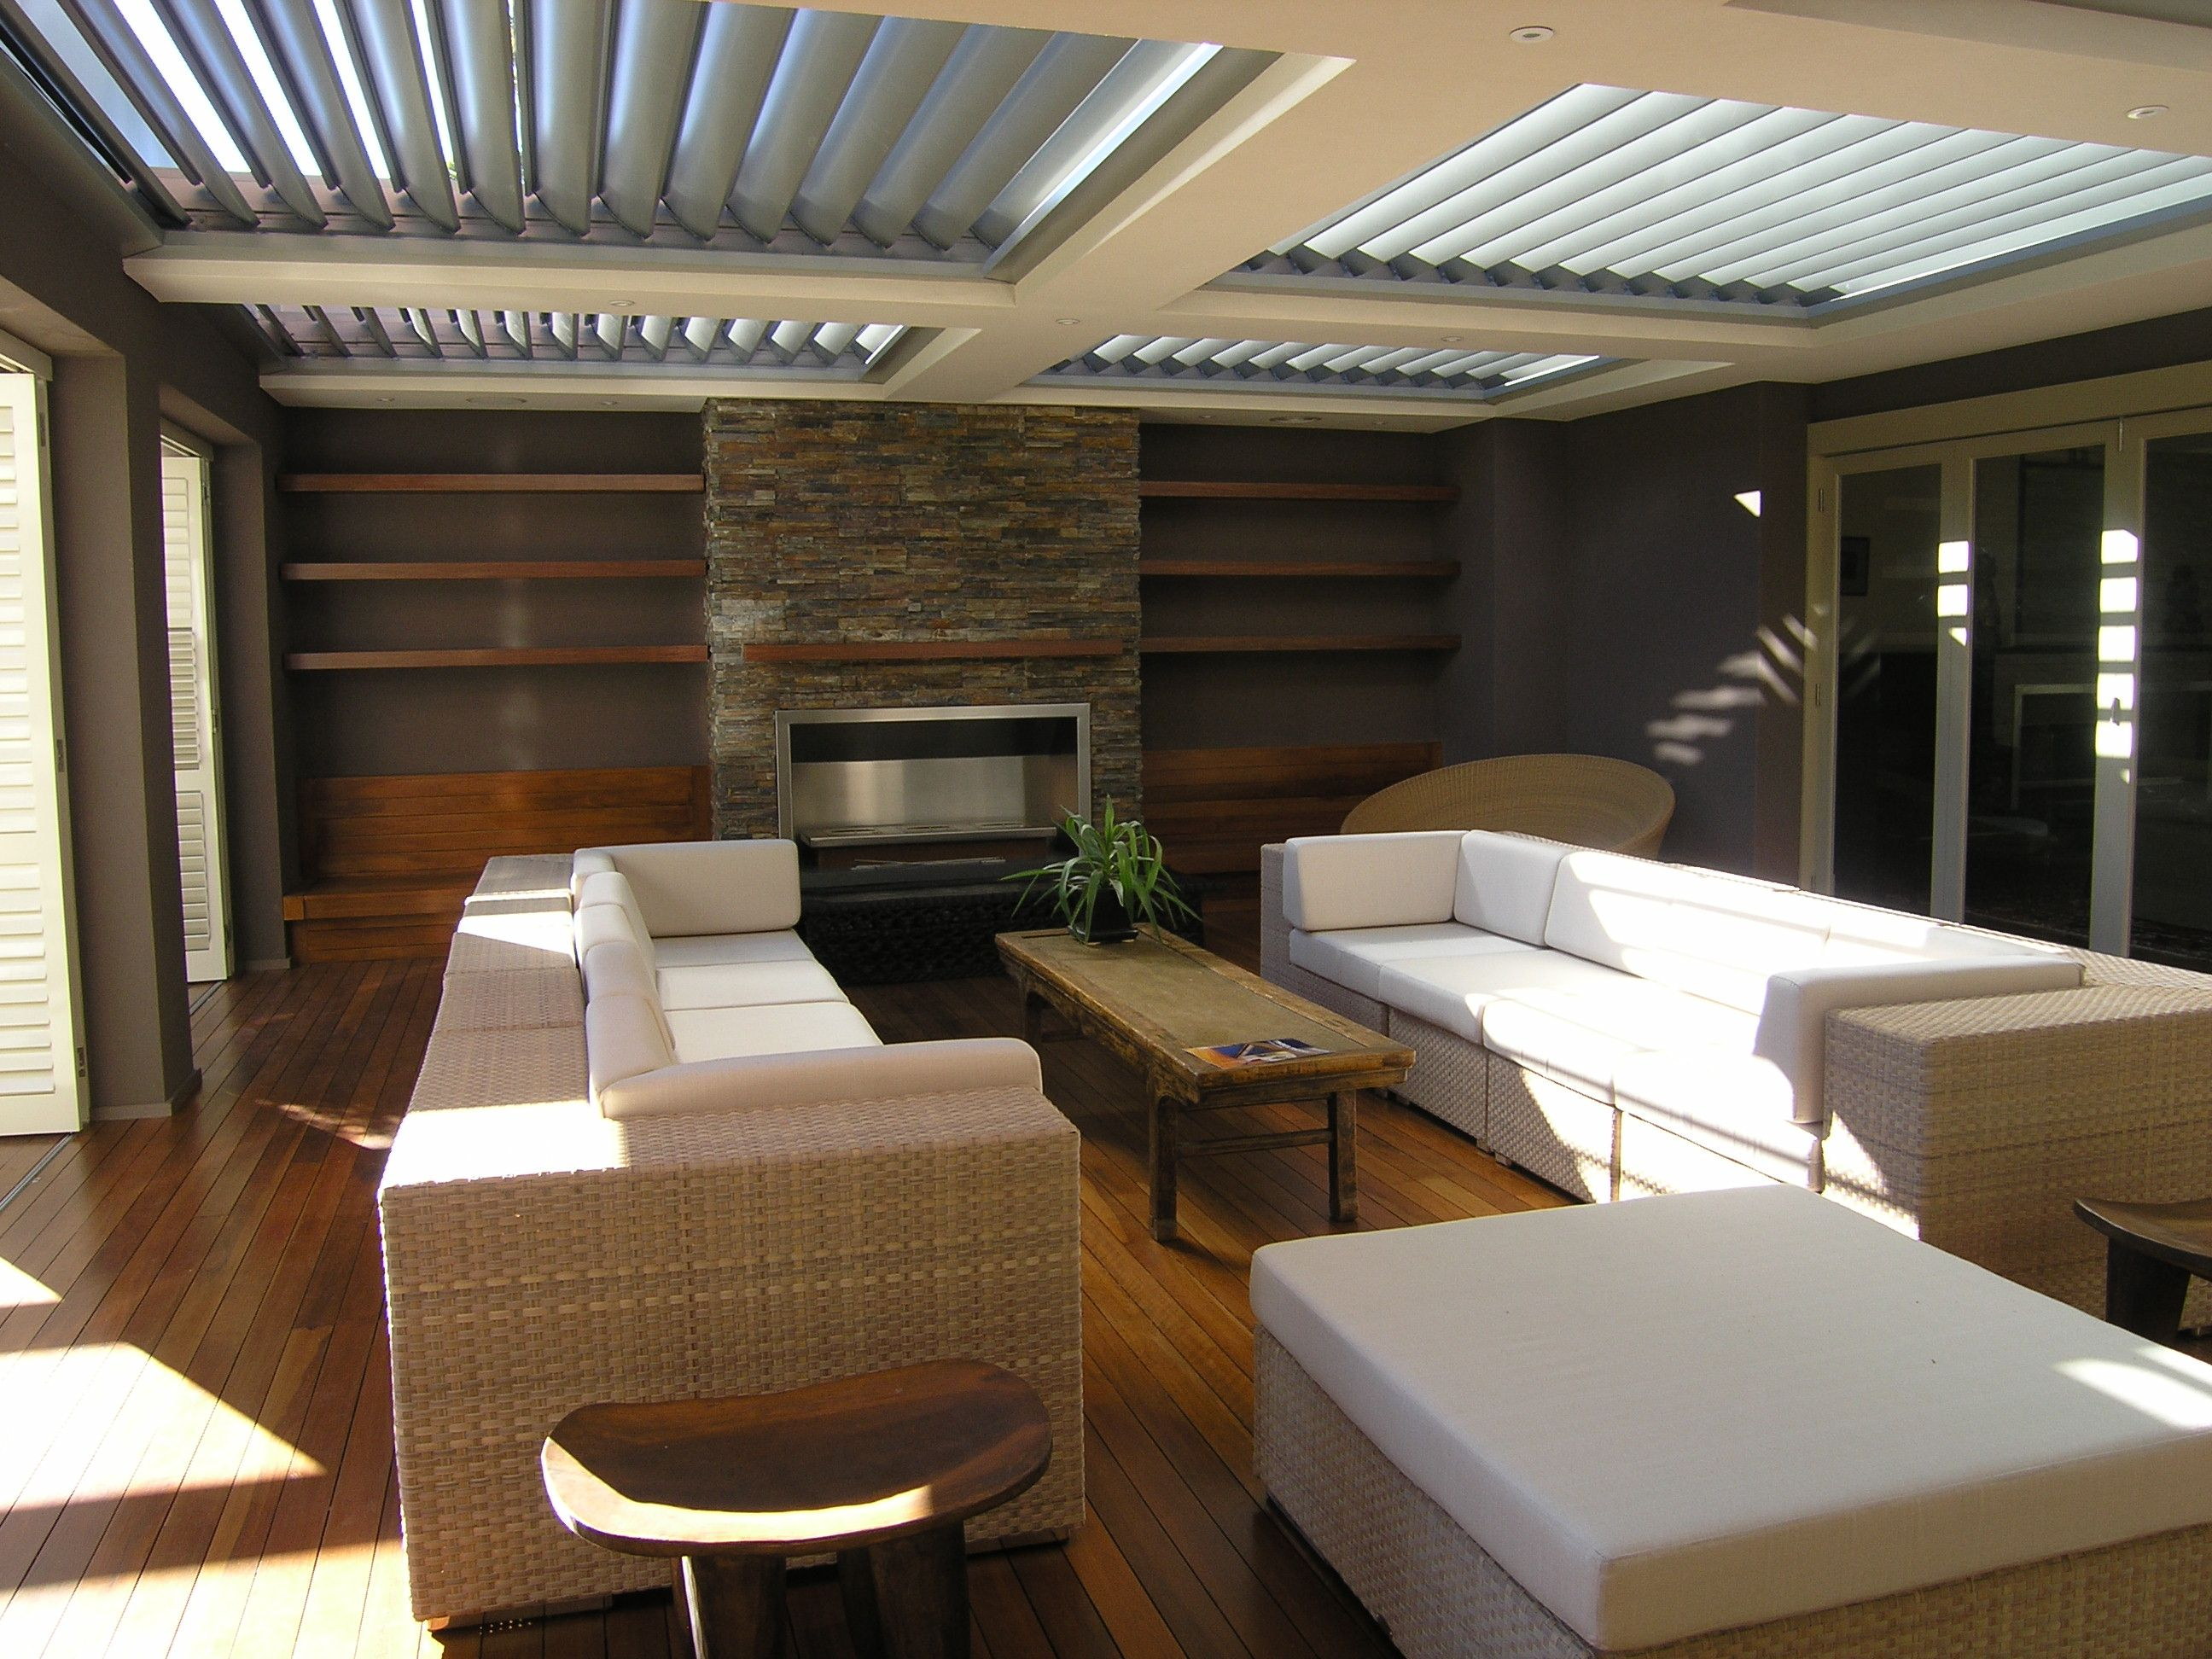 Attractive Outdoor Entertaining Area Design Ideas Part - 4: Amazing Outdoor Entertainment Area - Love The Skylights In The Roof With  The Blinds To Open Or Close